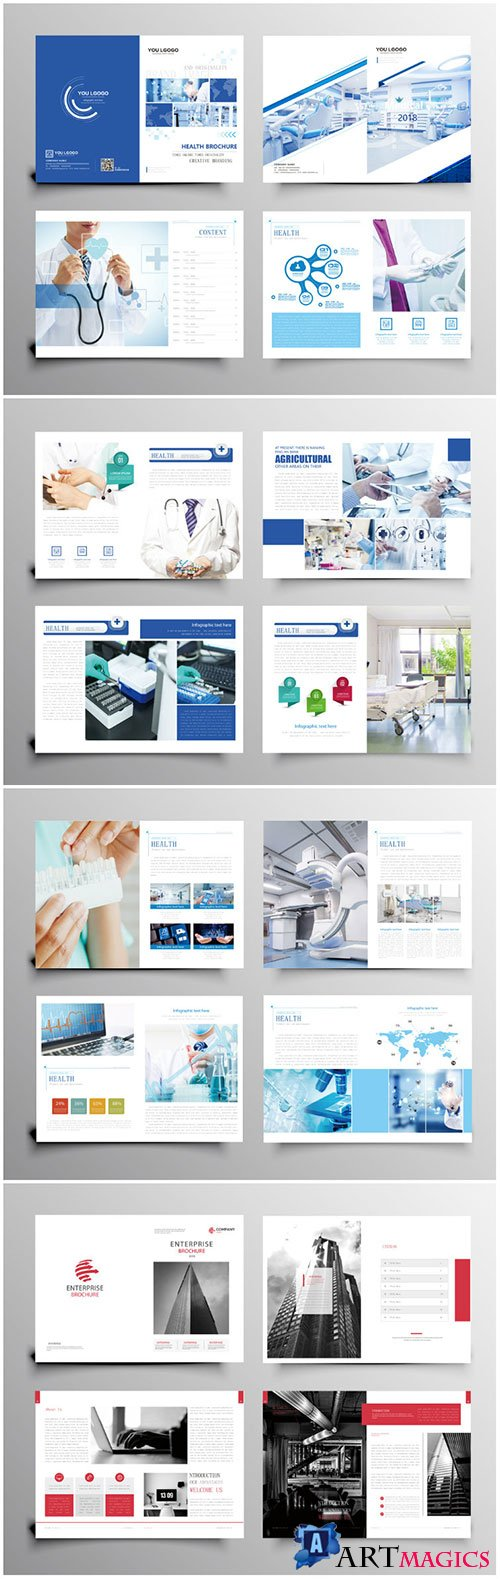 Brochure template vector layout design, corporate business annual report, magazine, flyer mockup # 232